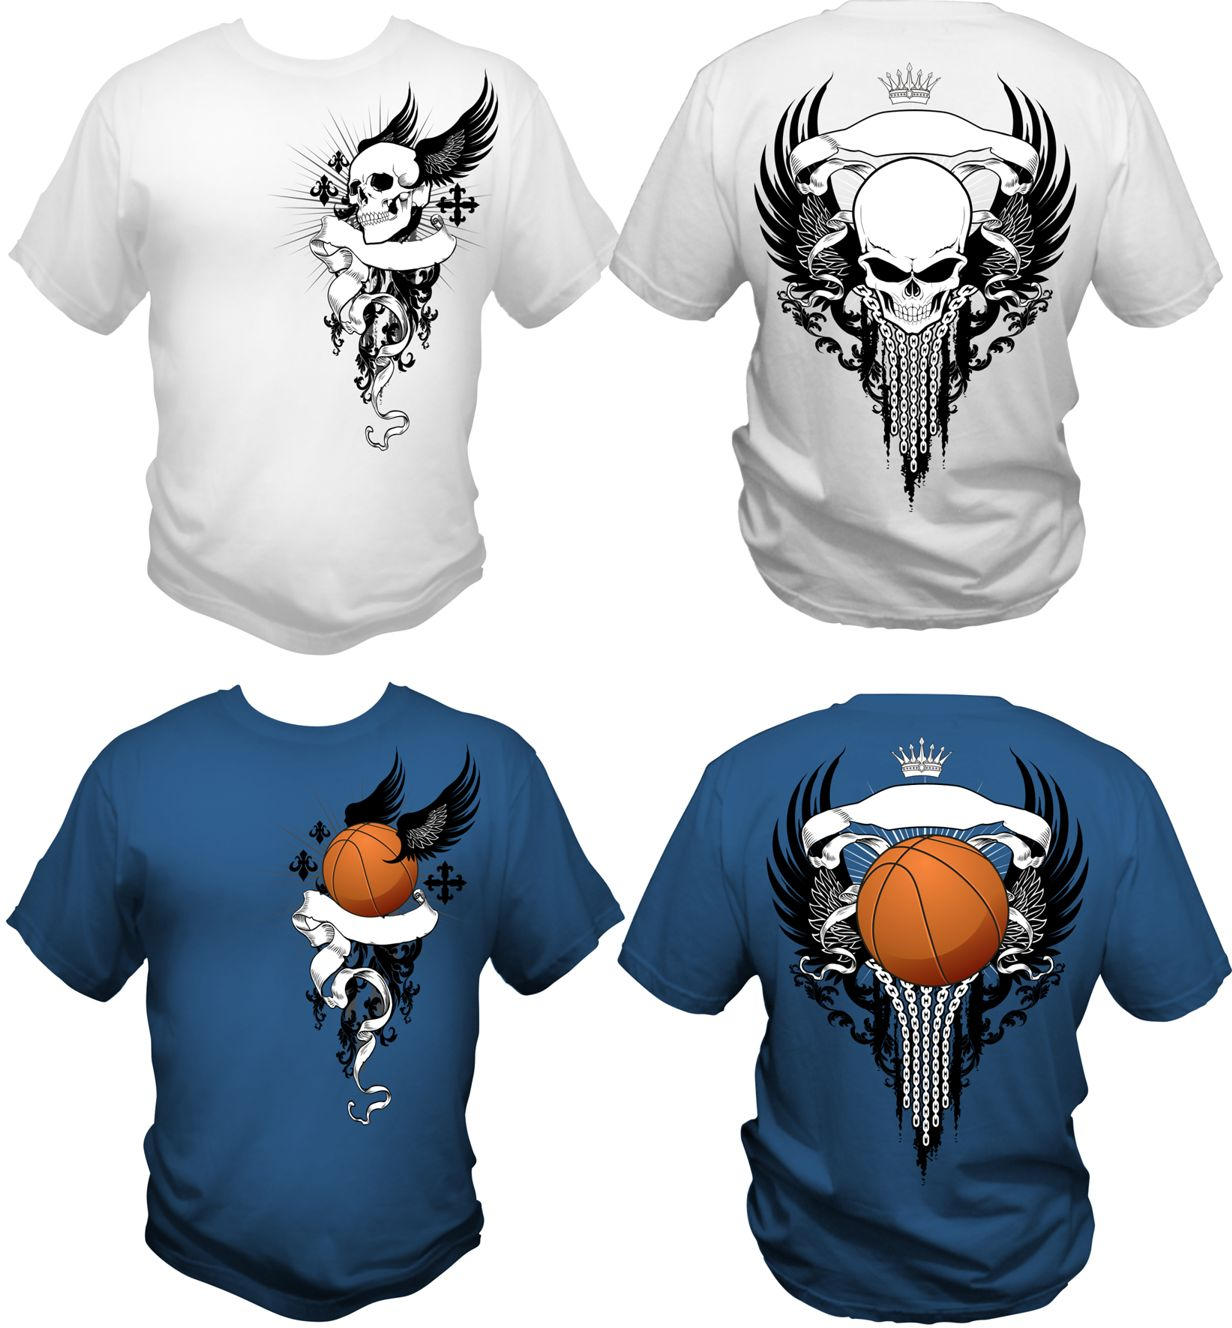 Design t shirt picture - Free T Shirt Design By Artamp